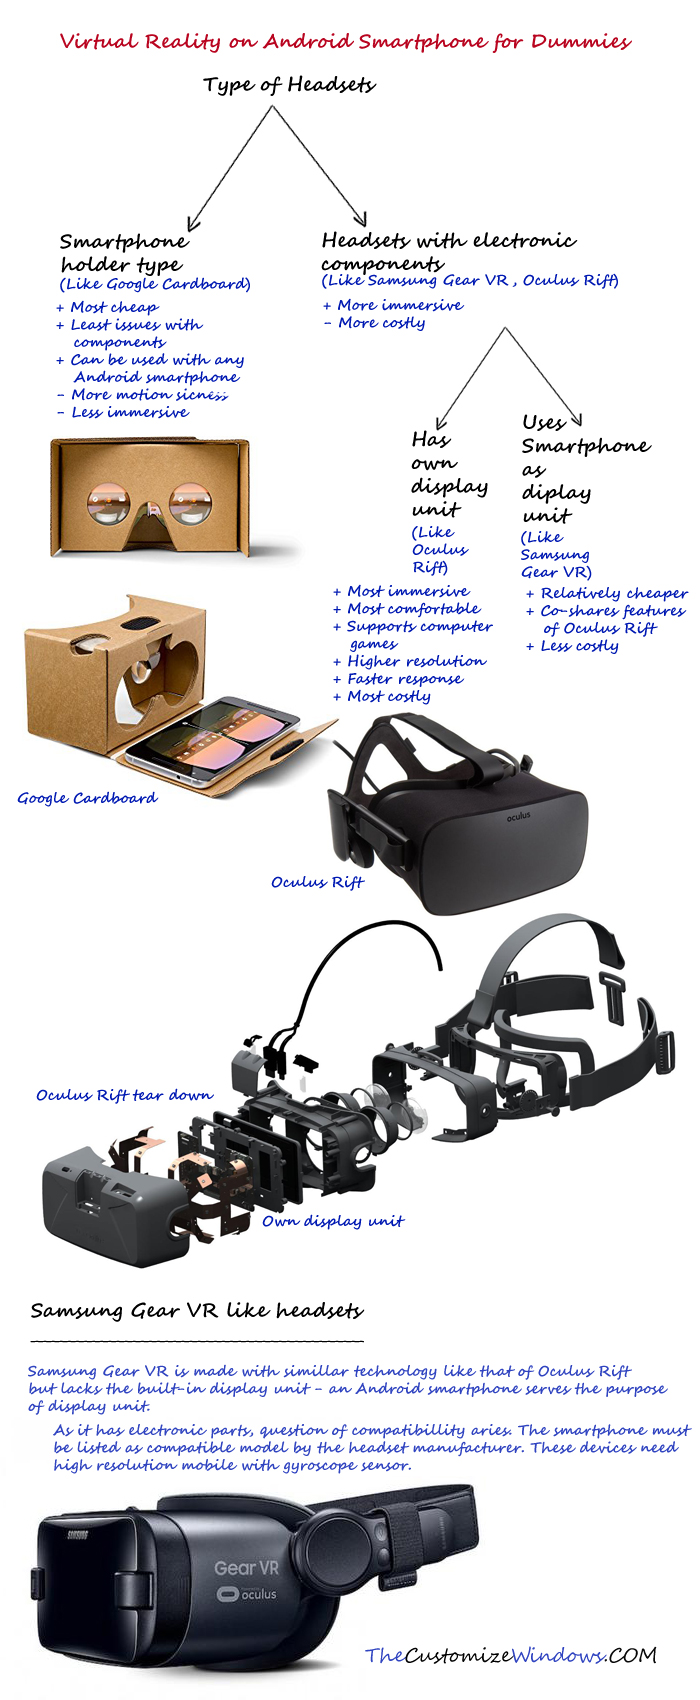 Virtual-Reality-on-Android-Smartphone-for-Dummies